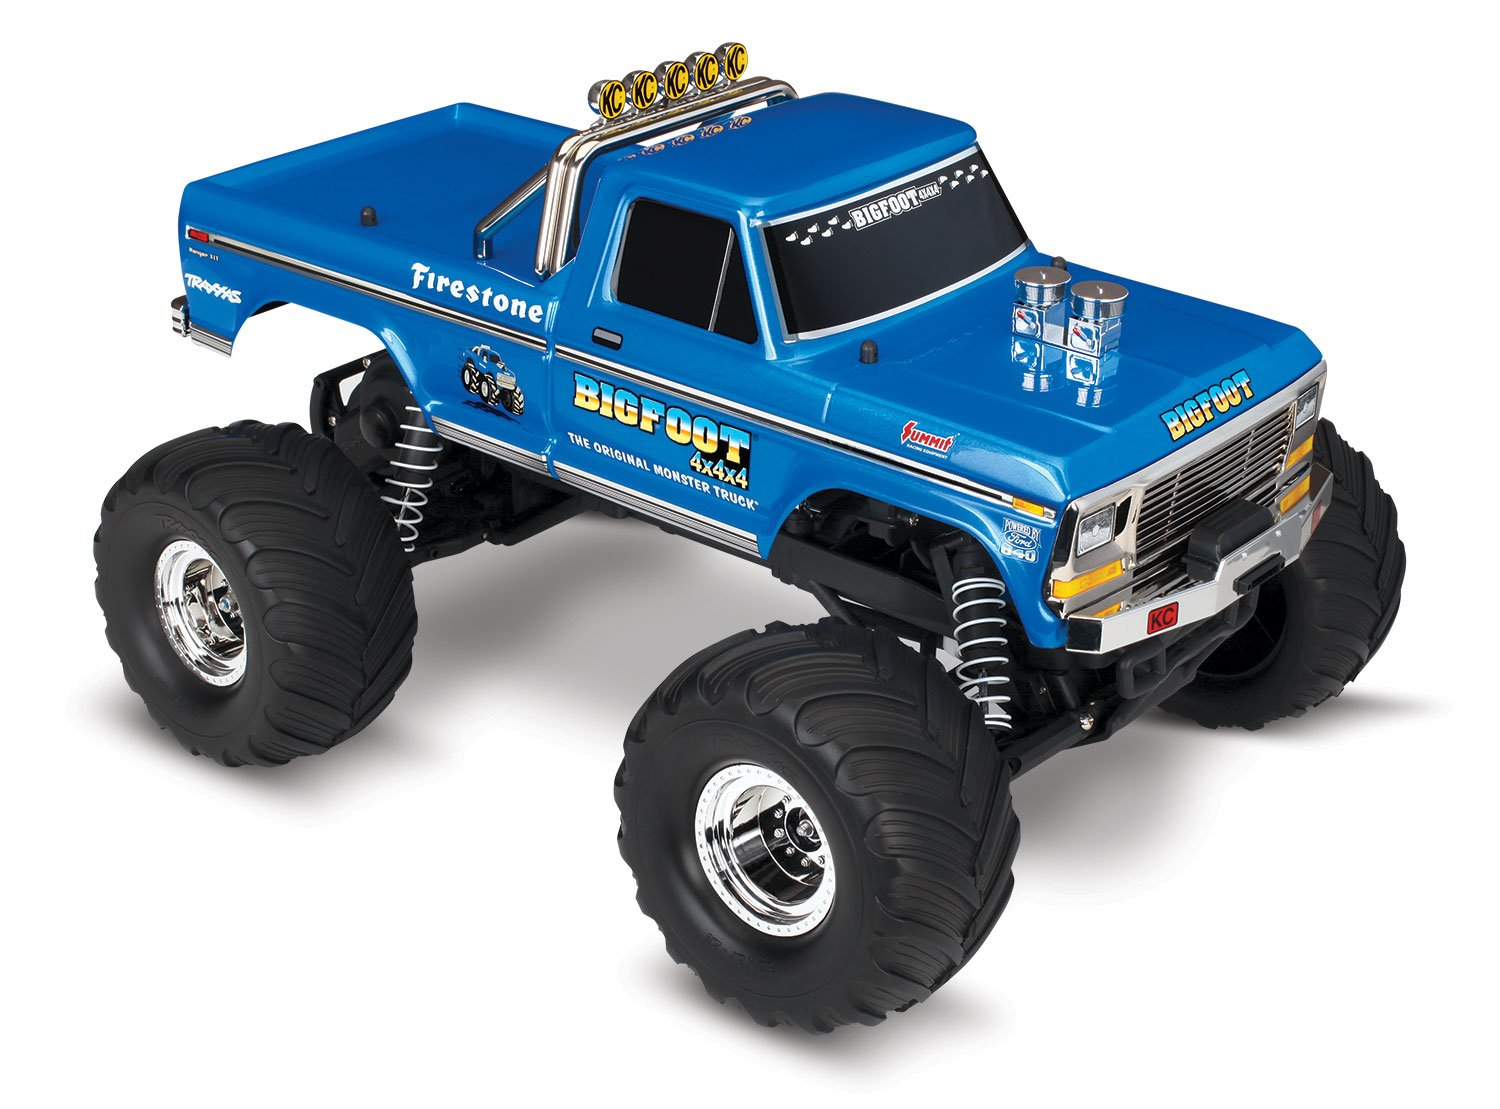 1. Traxxas 36034-1 Bigfoot 1/10 Scale Monster Truck